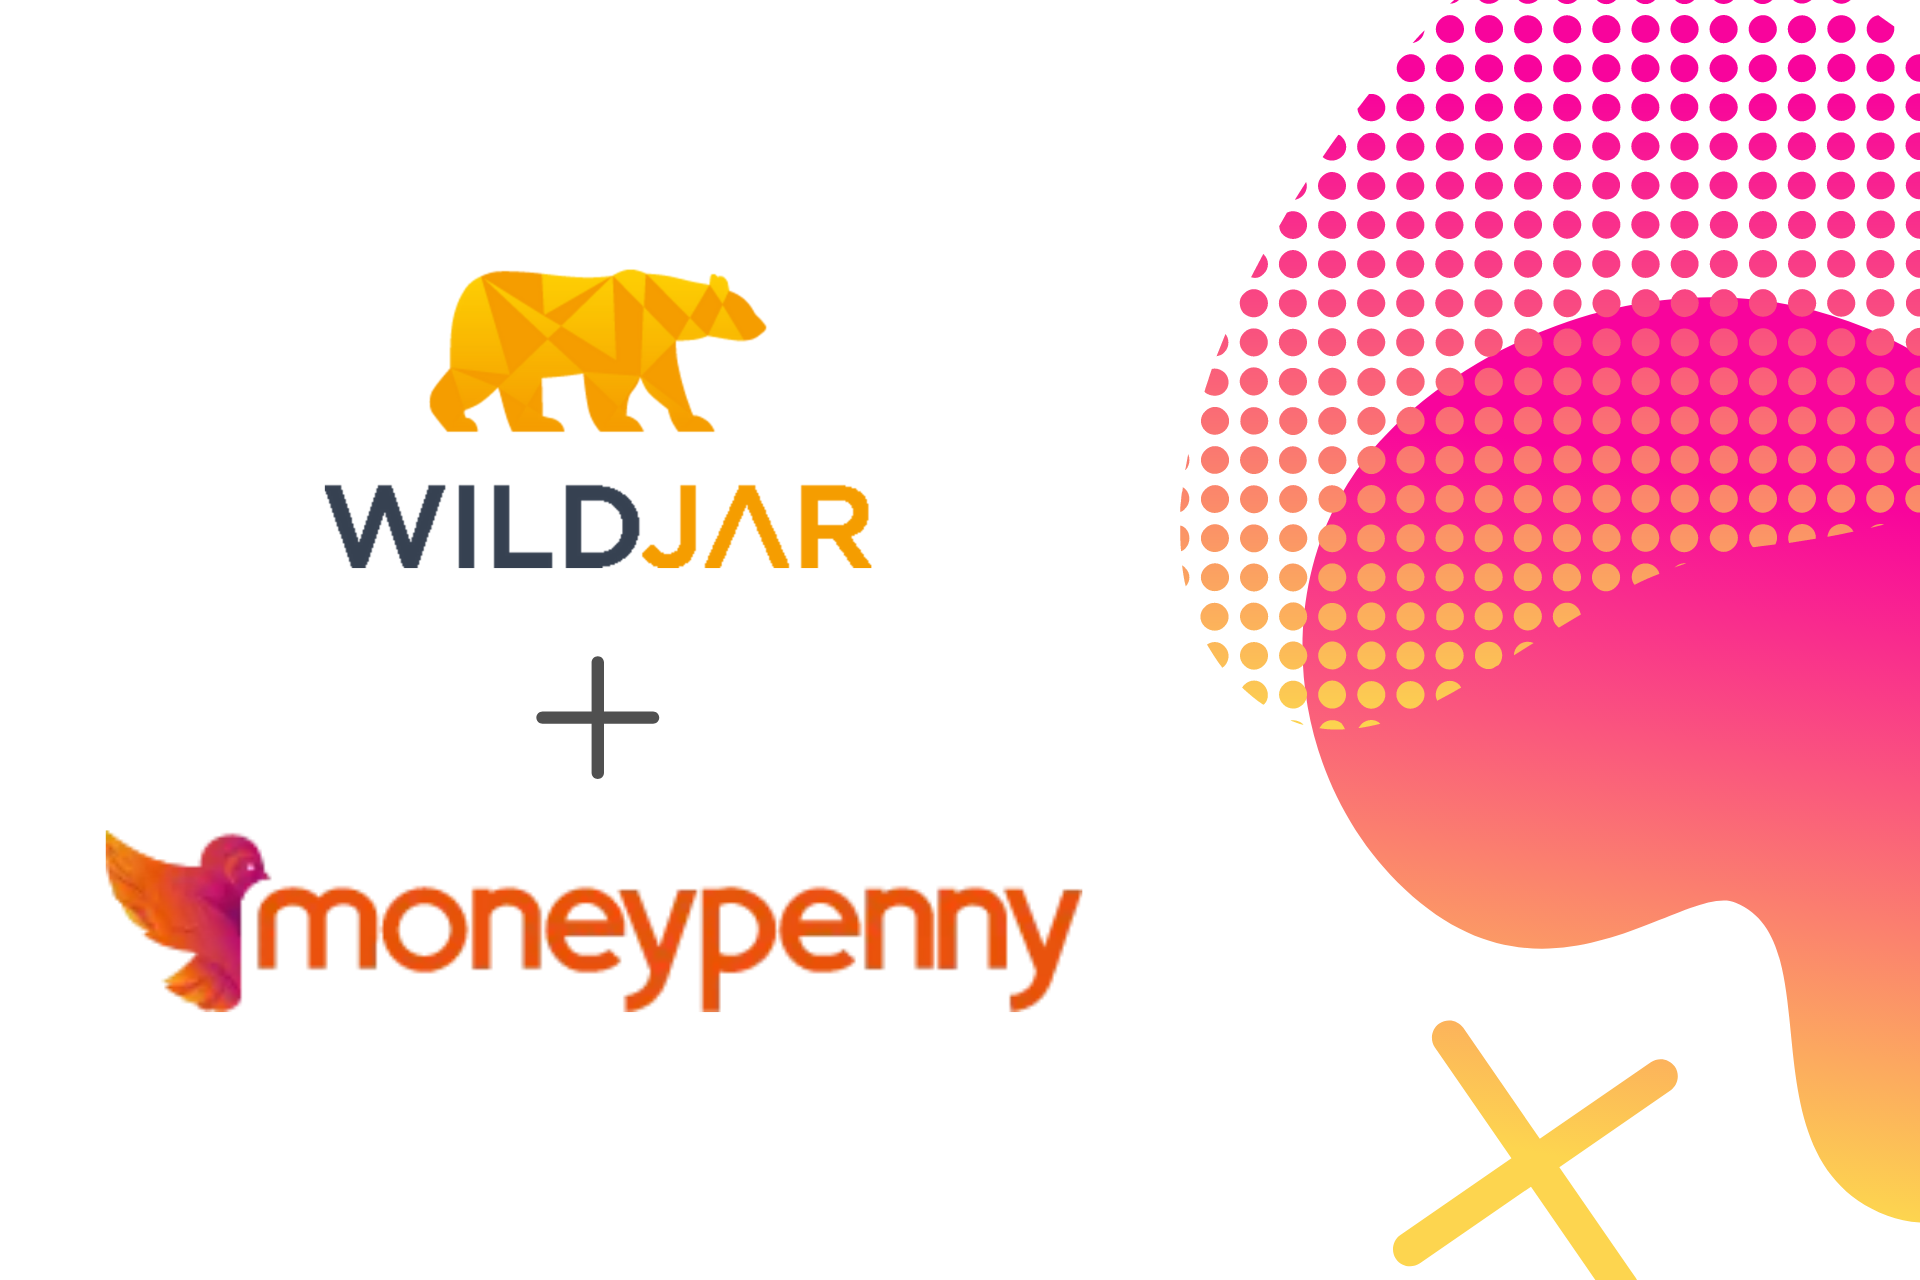 WildJar partners with Moneypenny to help dealerships accelerate sales